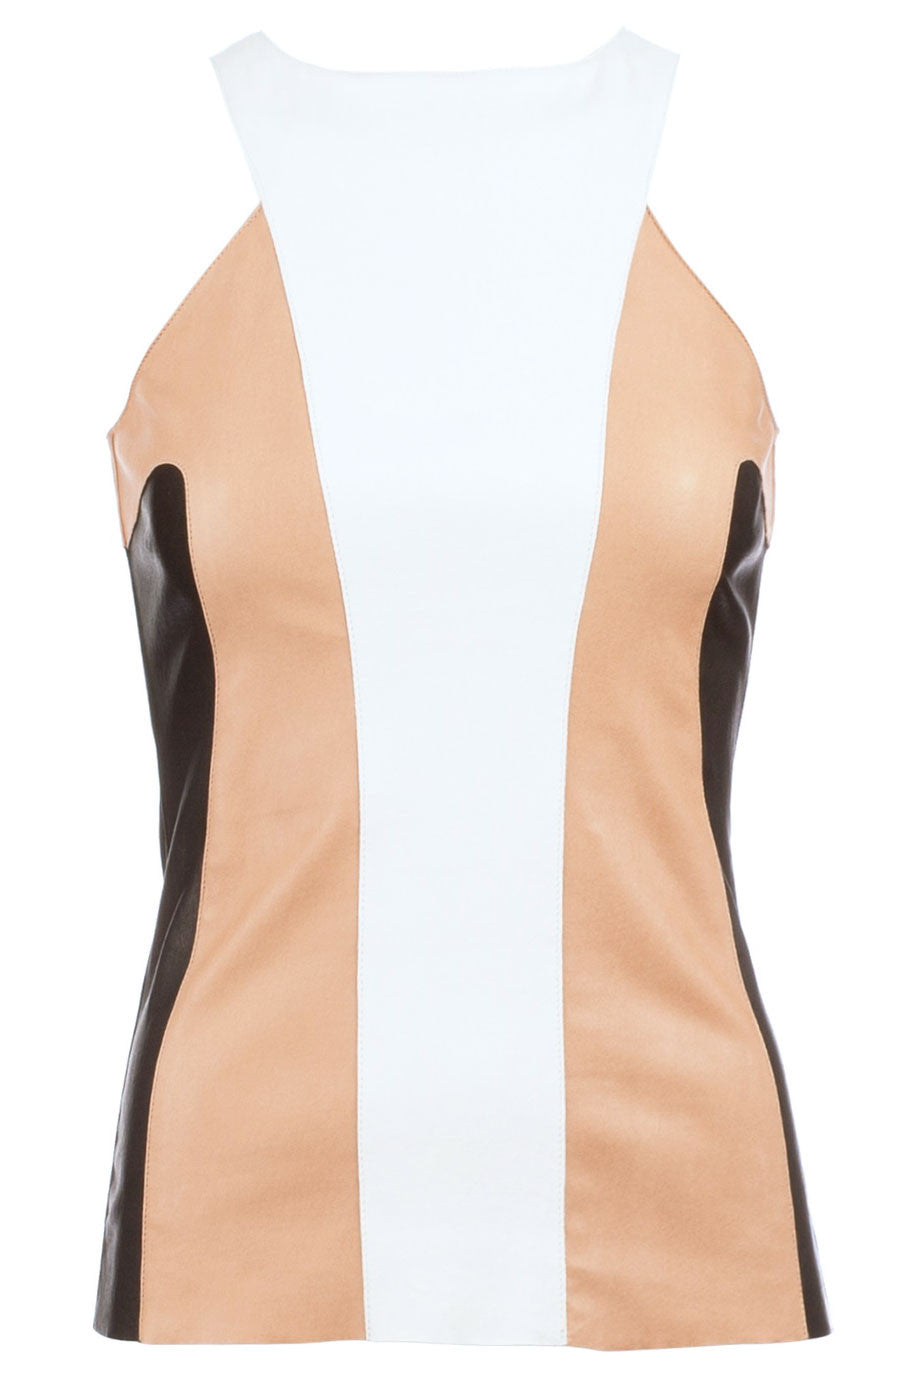 DROMe Beige Black + White Colorblock Leather Tank Top / Sz M - Style Therapy  - 1